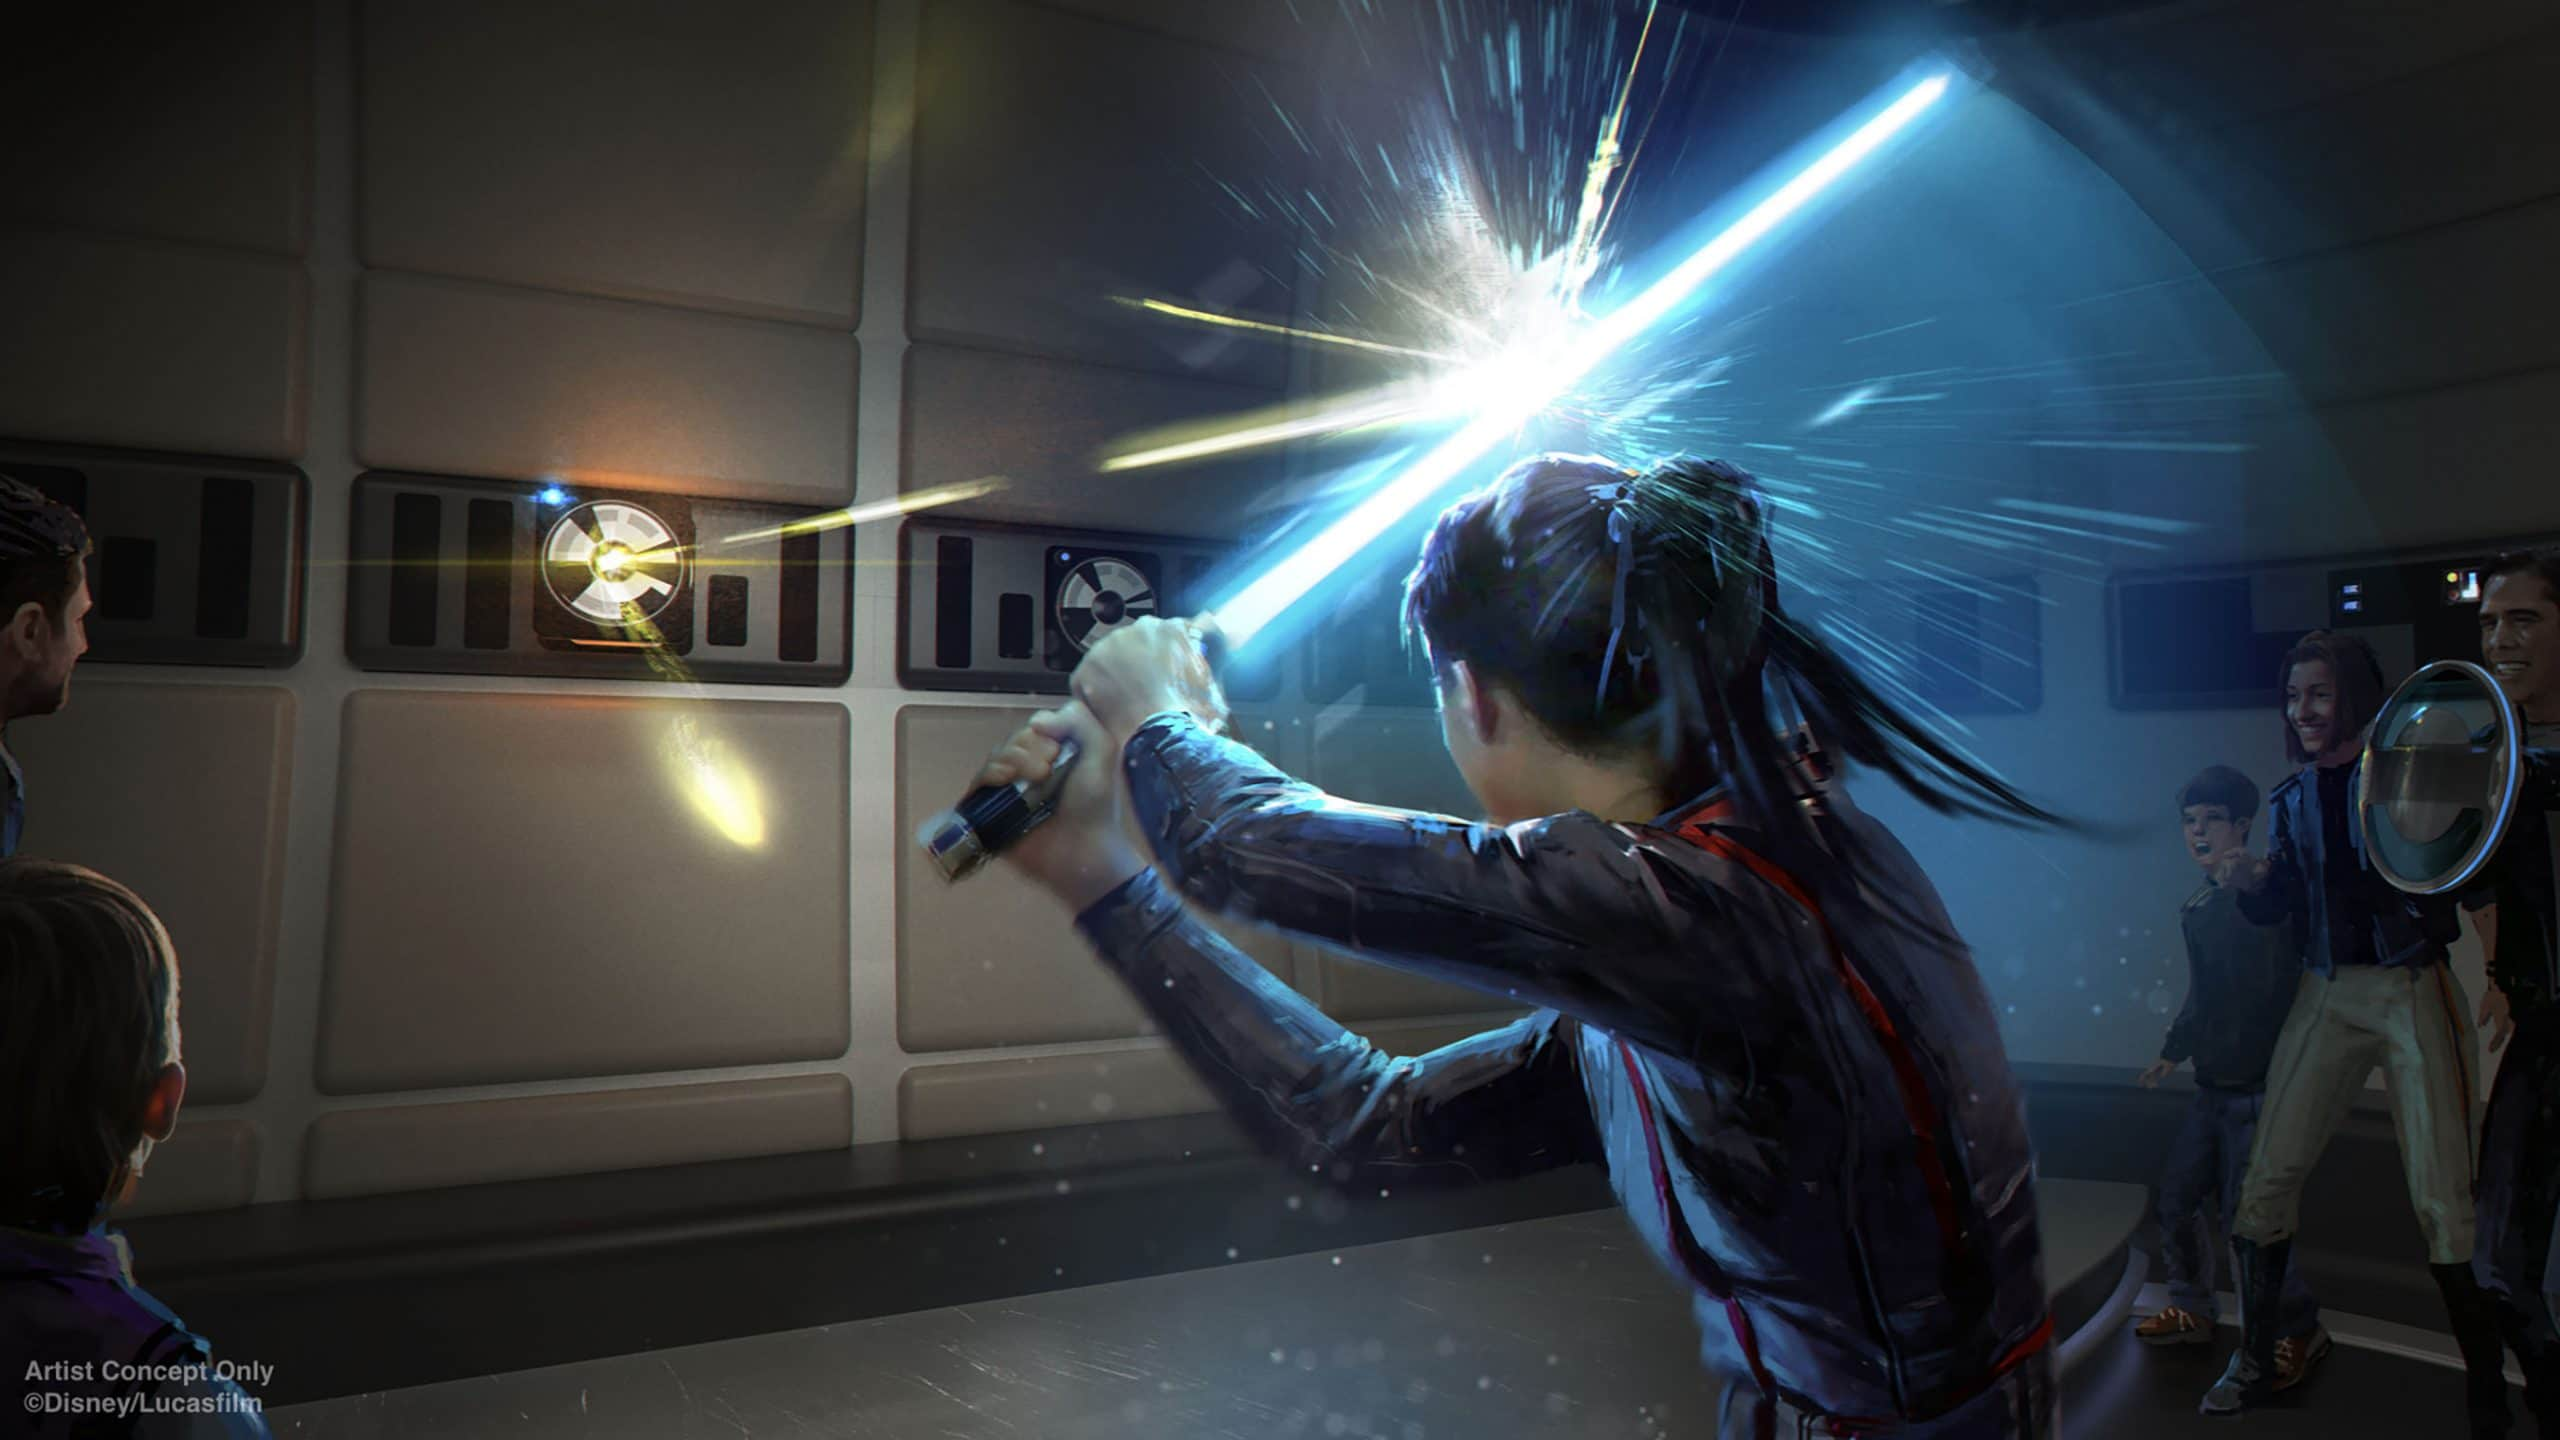 Star Wars: Galactic Starcruiser is opening at Disney World in 2022 20